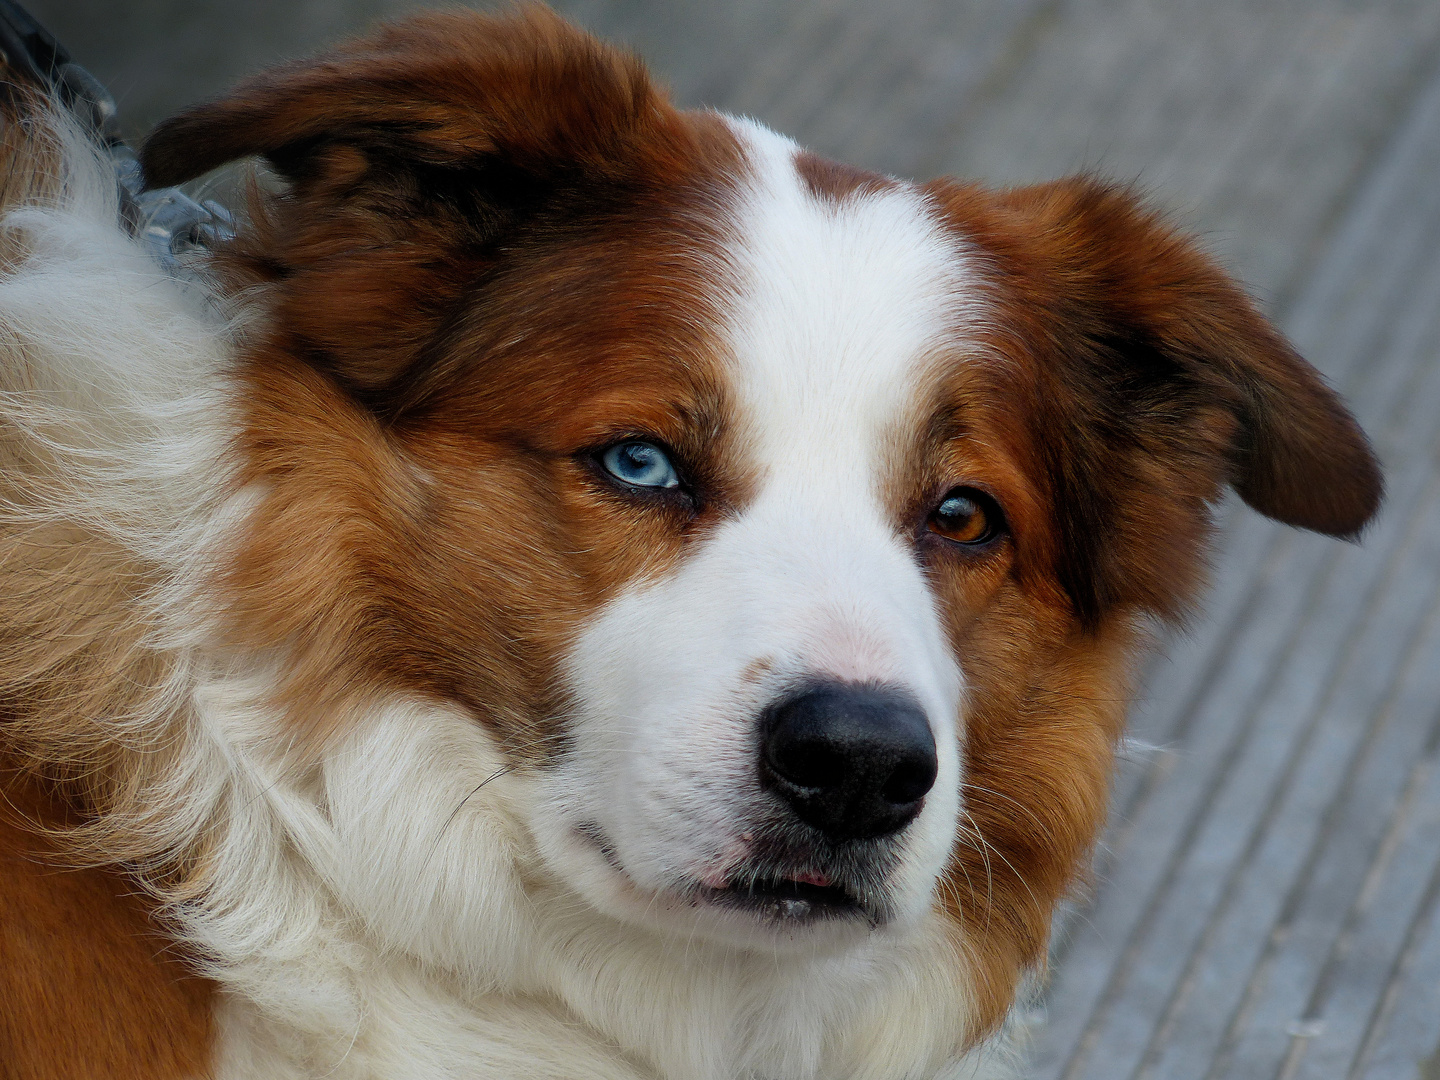 Dog with different colored eyes